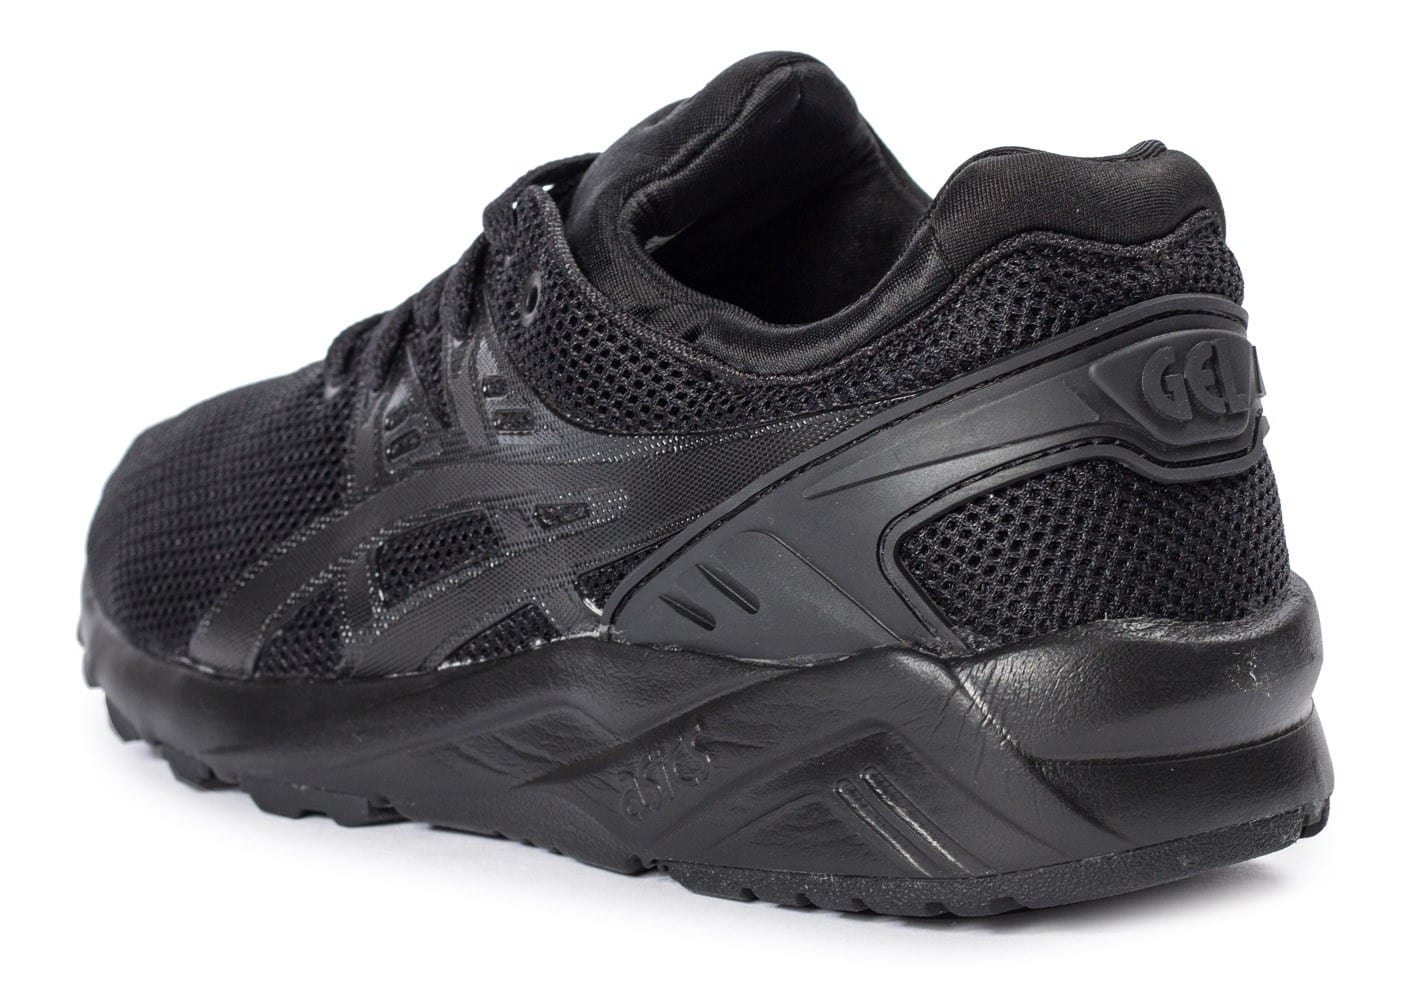 ... Chaussures Asics Gel Kayano Trainer Evo W triple black vue arrière ... cde58a7d8518